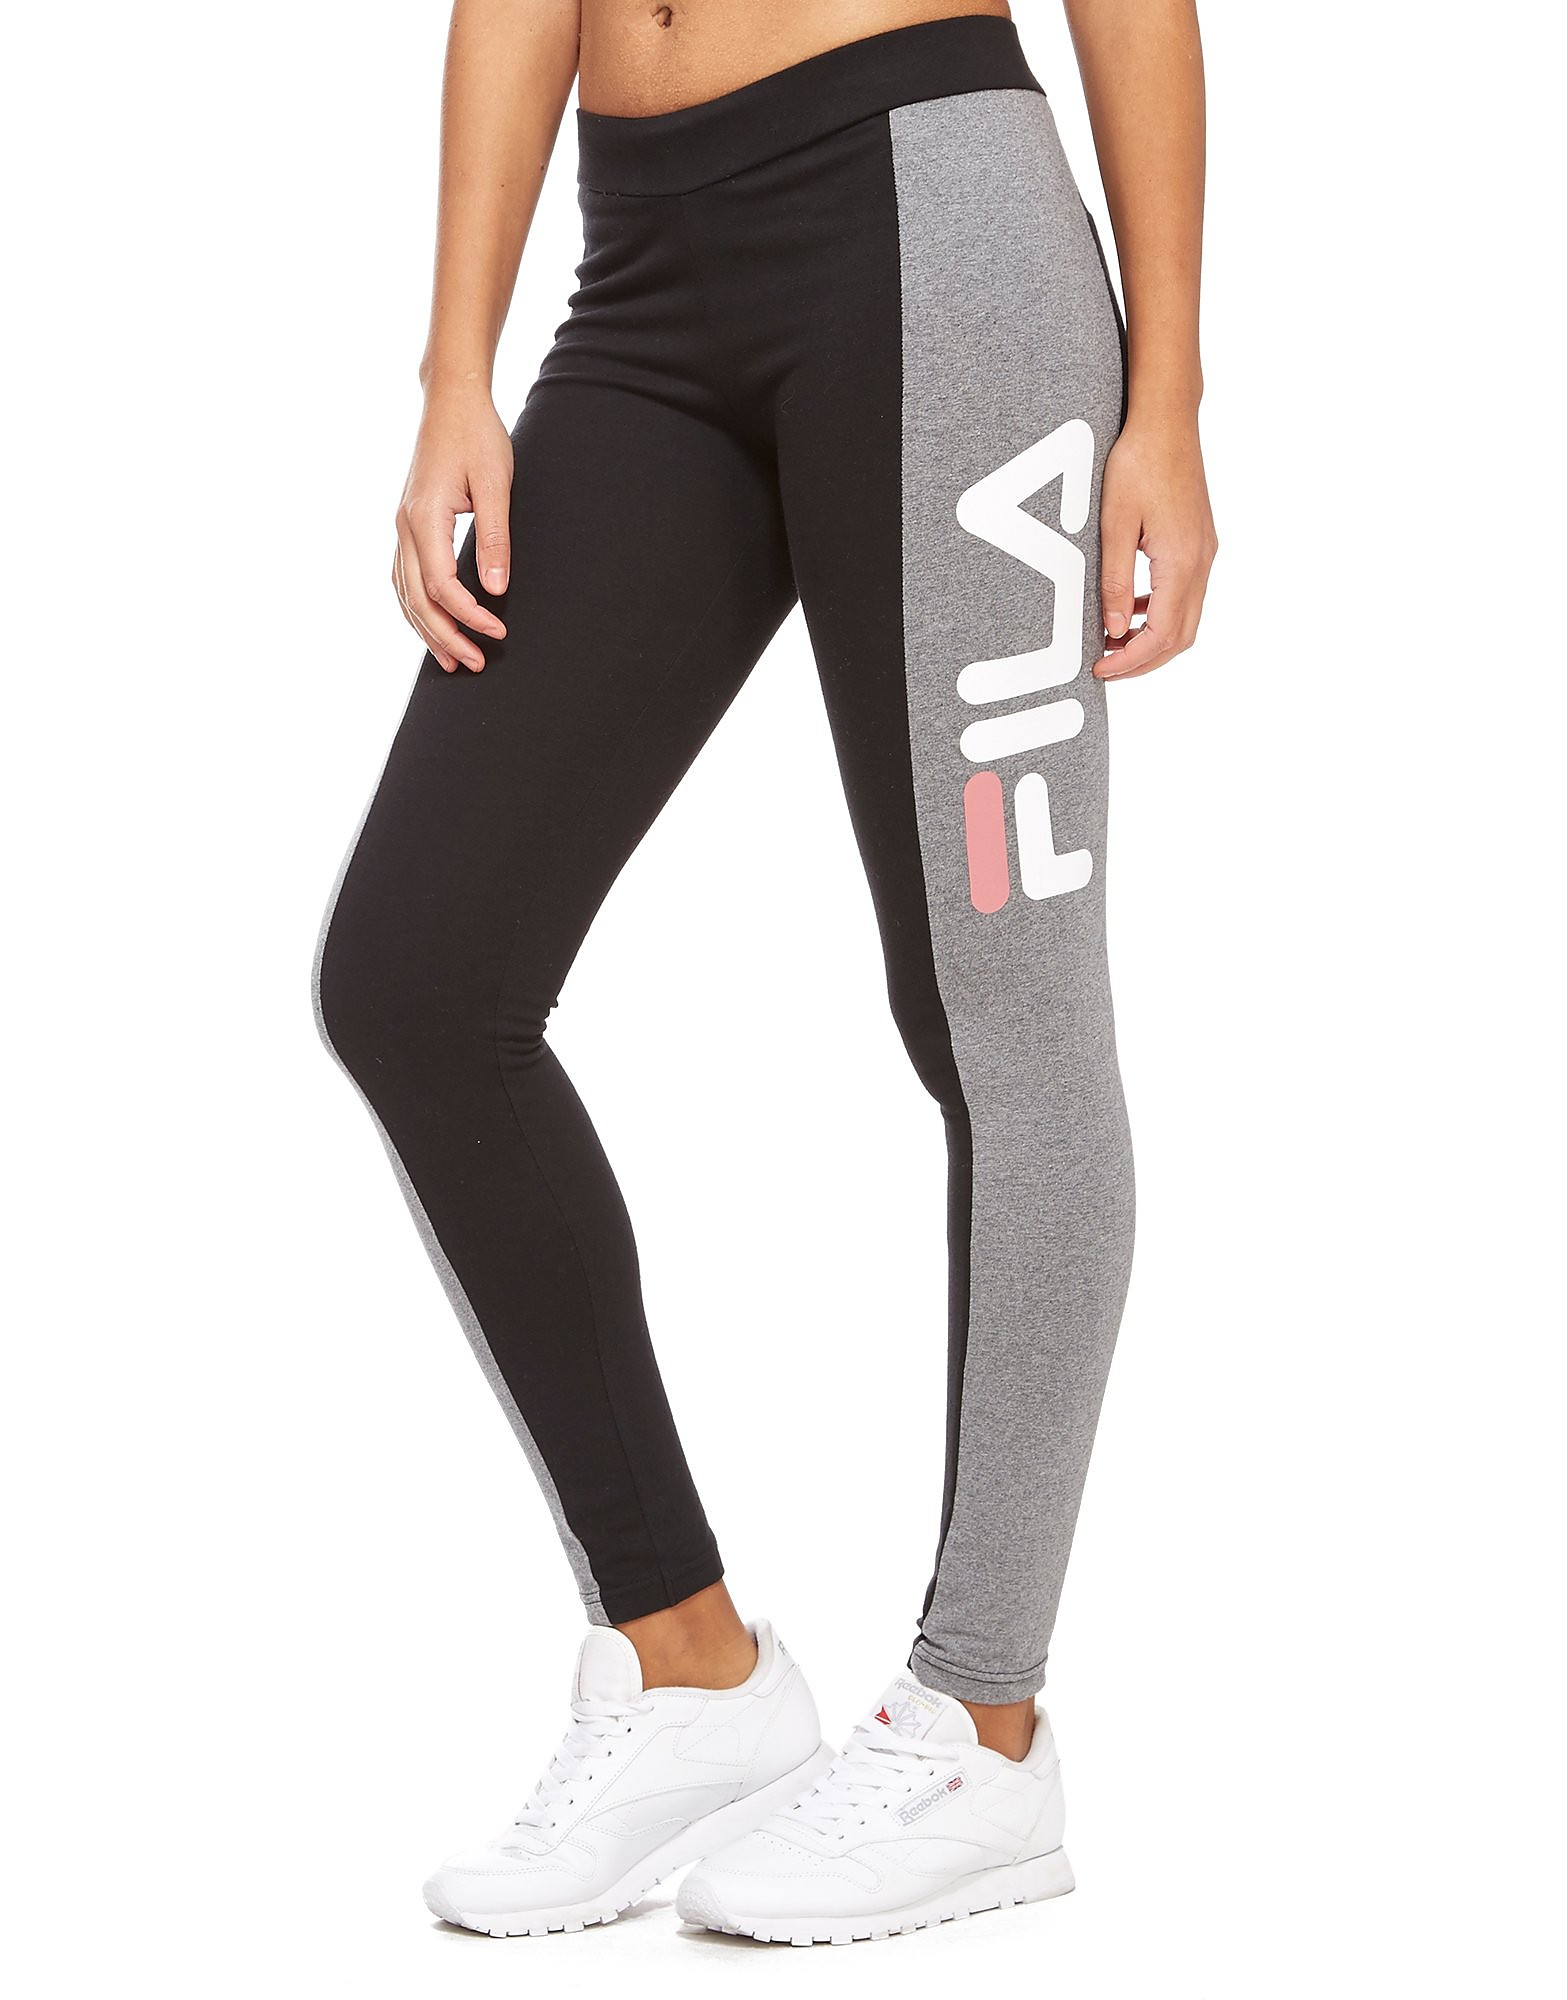 Fila Phoebe Panel Leggings